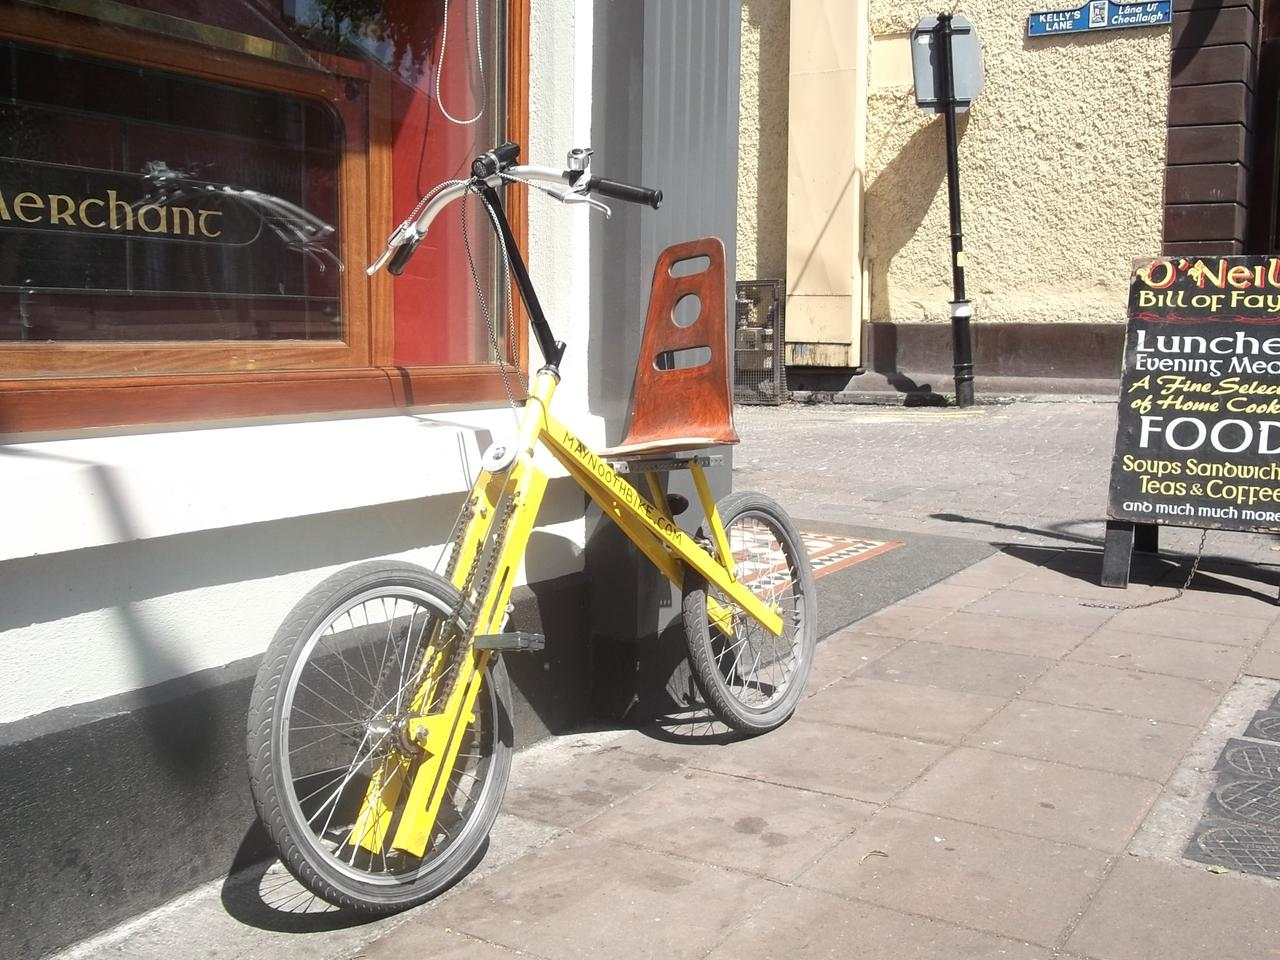 The MaynoothBike provides an alternative to the traditional bicycle